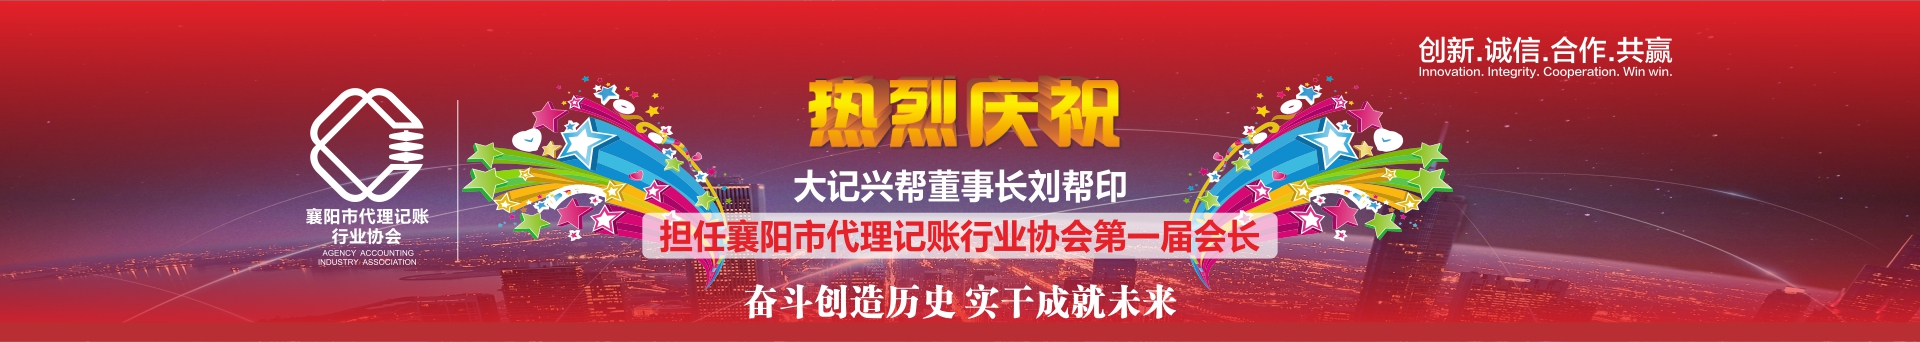 PC-首页banner1